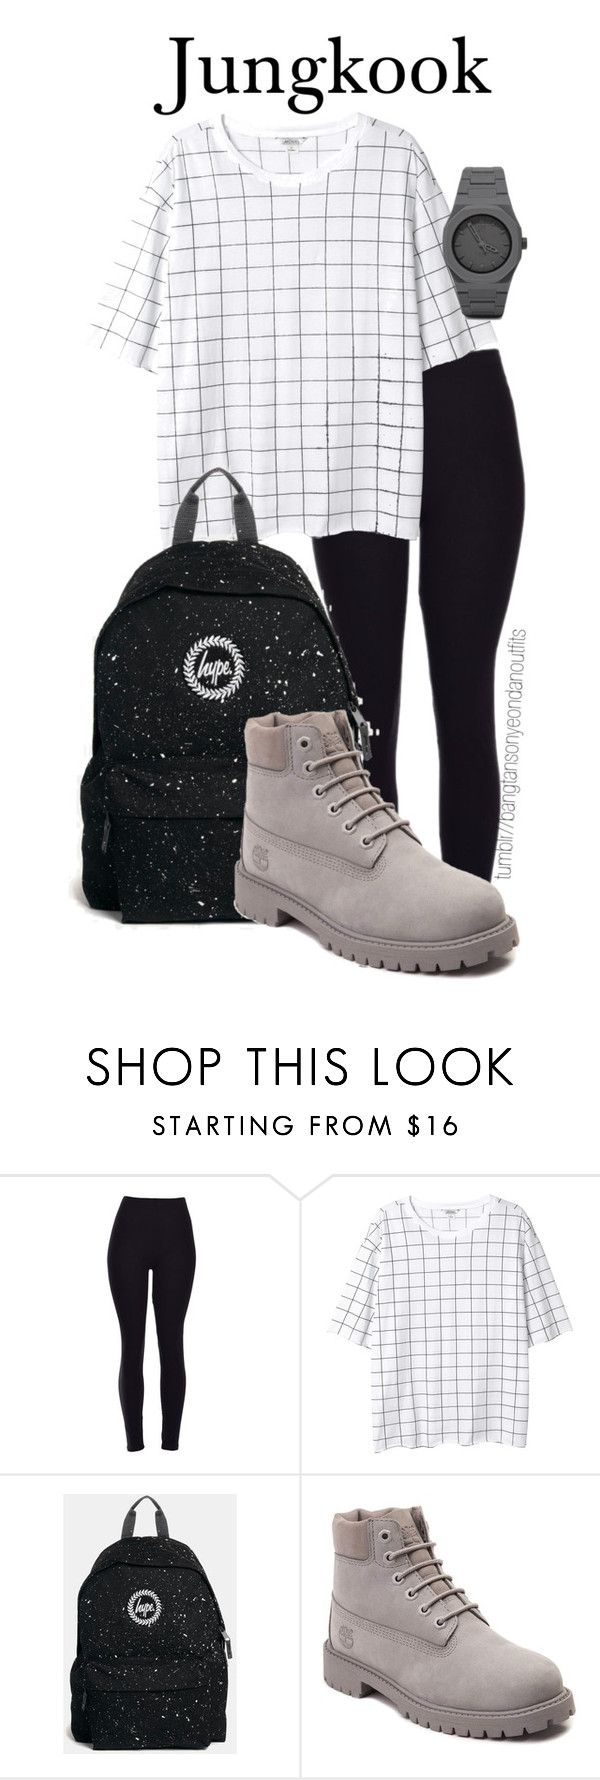 """BTS school inspired JUNGKOOK"" by bangtanoutfits ❤ liked on Polyvore featuring Mode, Monki, Hype, Timberland, CC, kpop, bts, BangtanBoys und jungkook"